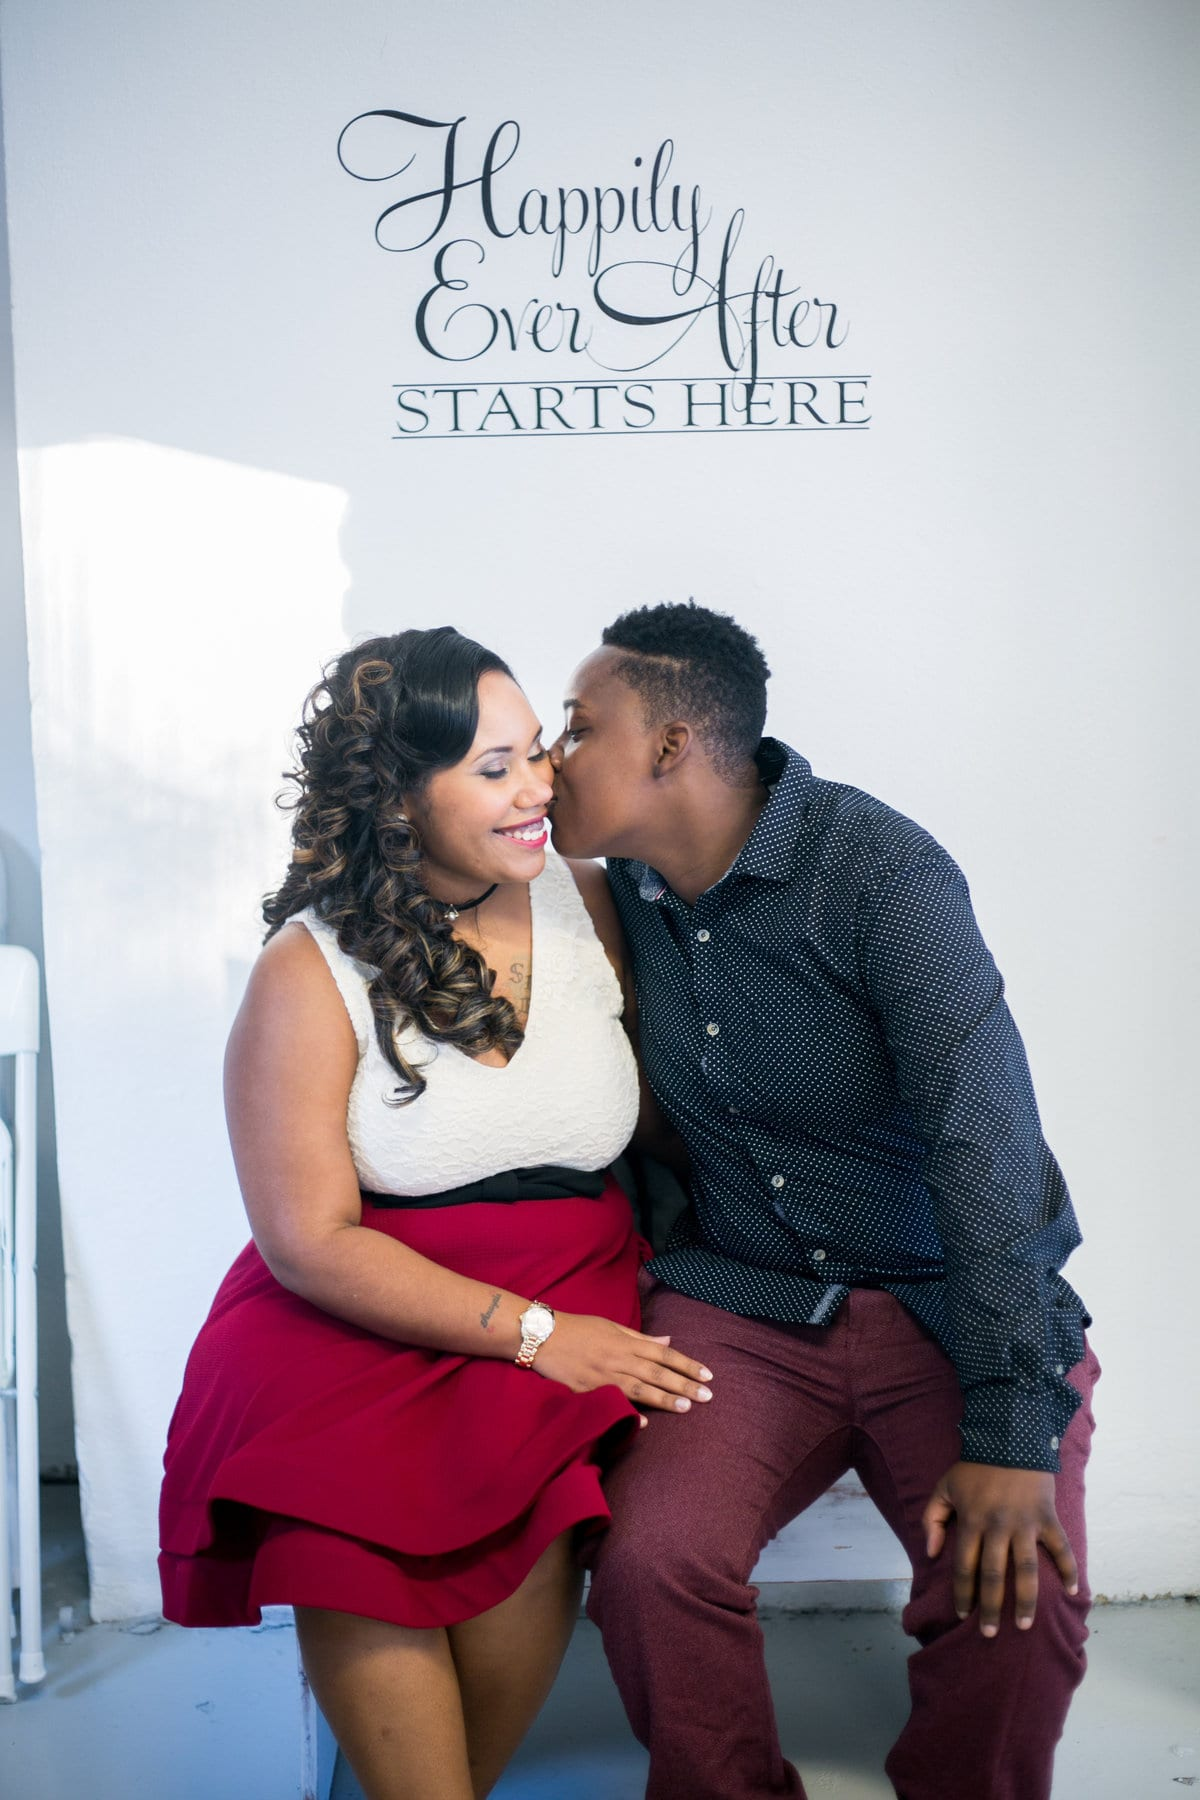 Happily ever after starts here for this Savannah couple